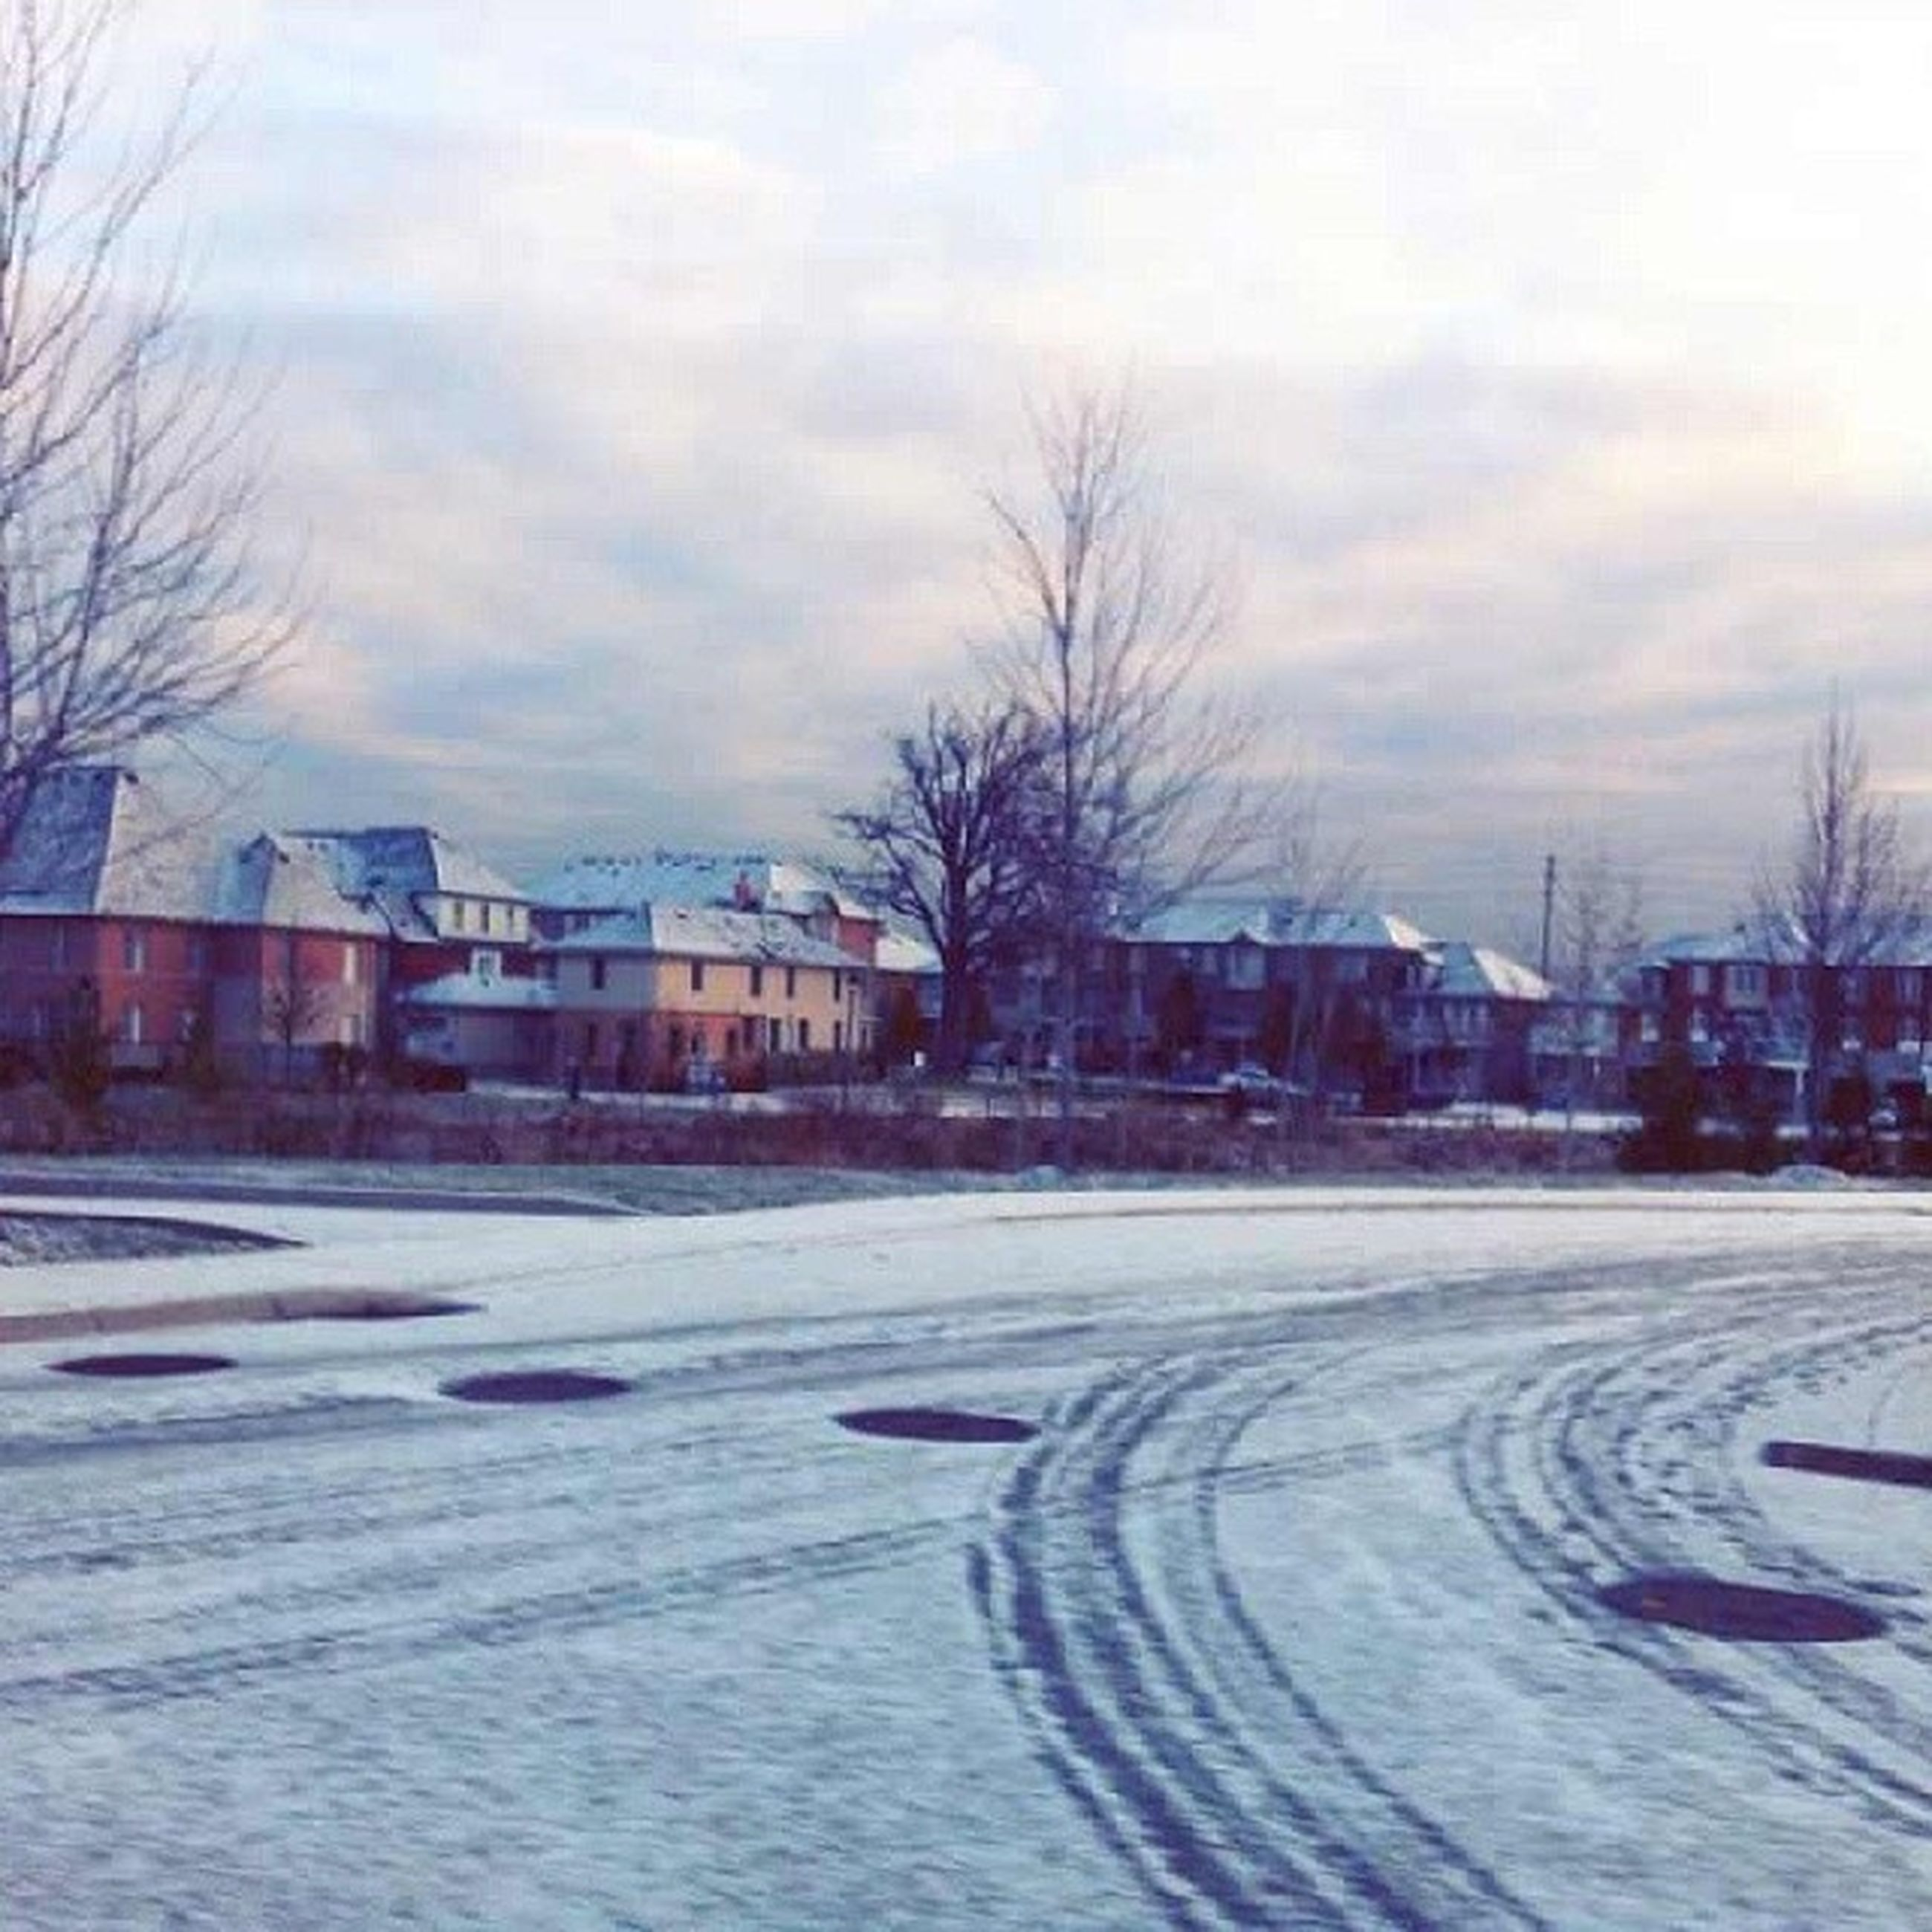 snow, winter, cold temperature, bare tree, building exterior, weather, architecture, built structure, sky, season, city, cloud - sky, street, road, tree, transportation, covering, cloudy, car, frozen